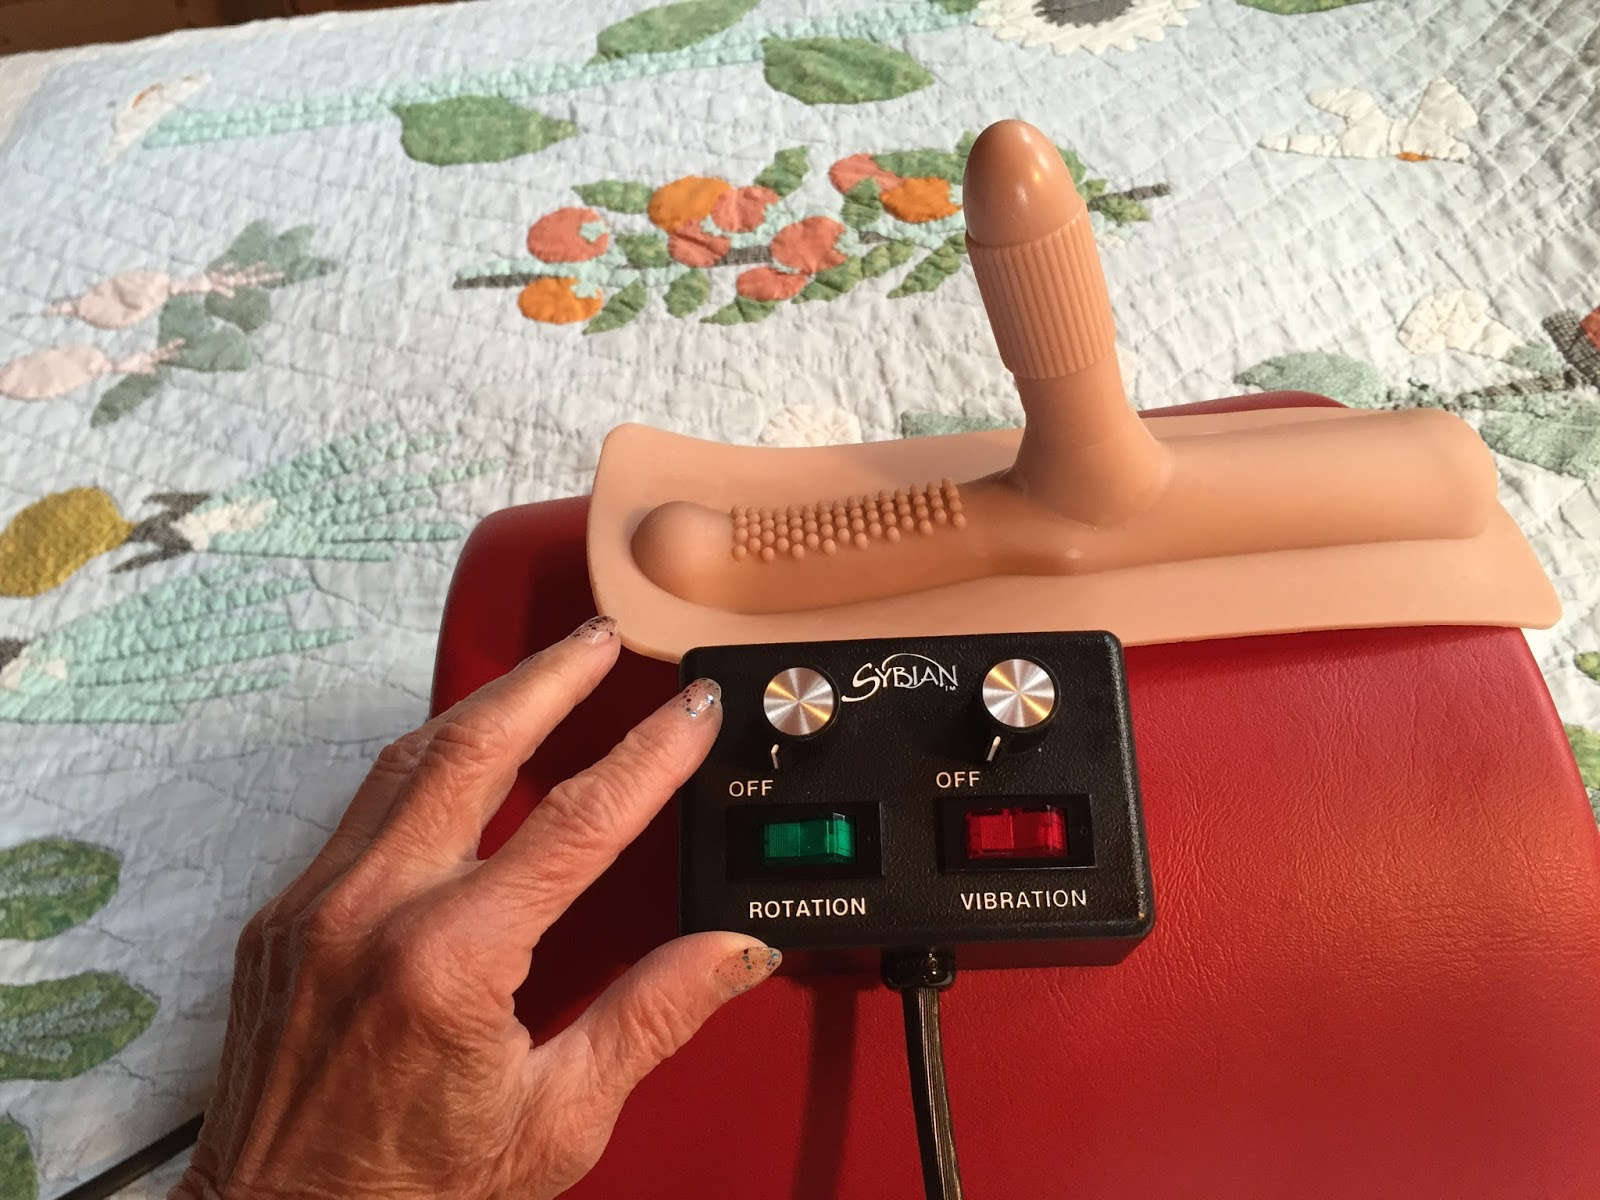 Double penetration sybian attachment